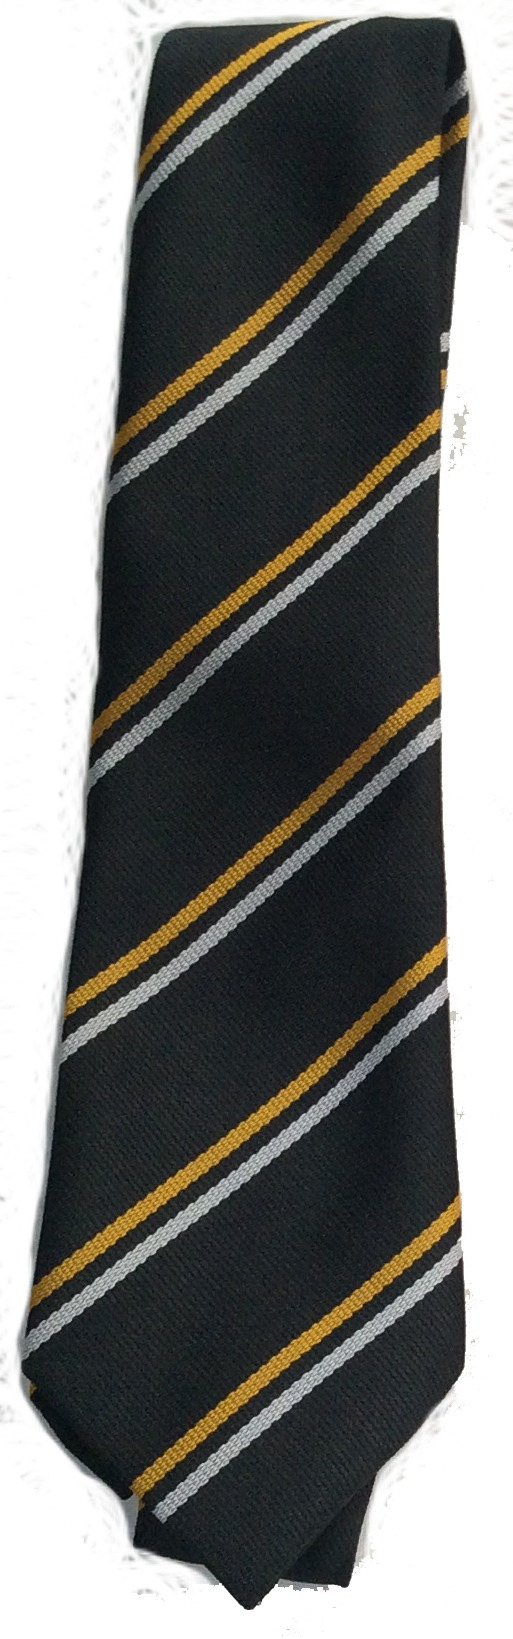 Christ the Redeemer School Tie